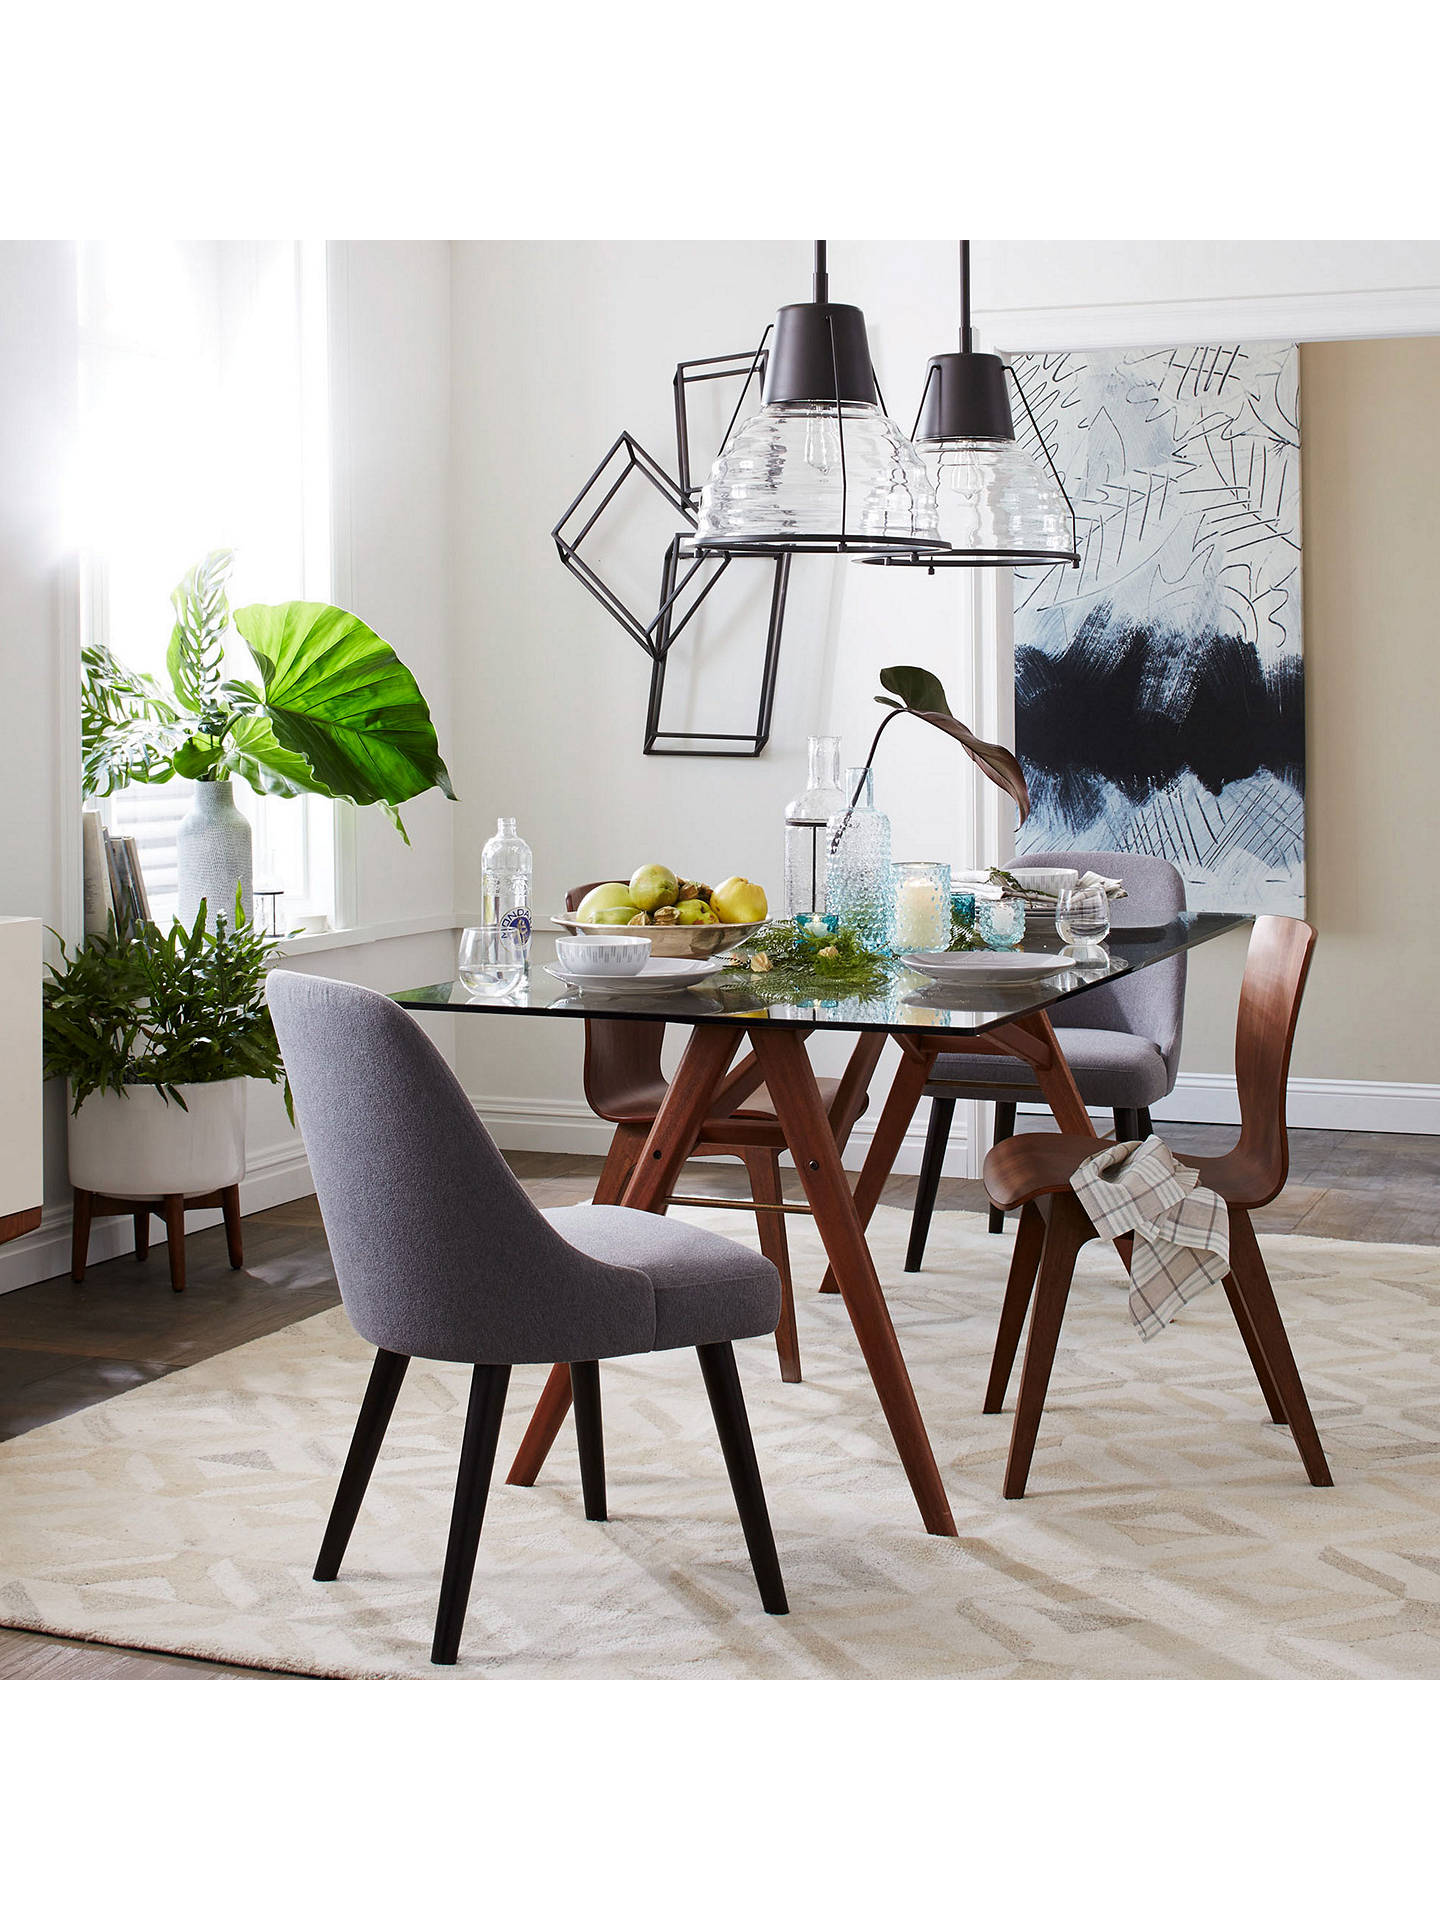 Buywest elm jensen dining table online at johnlewis com